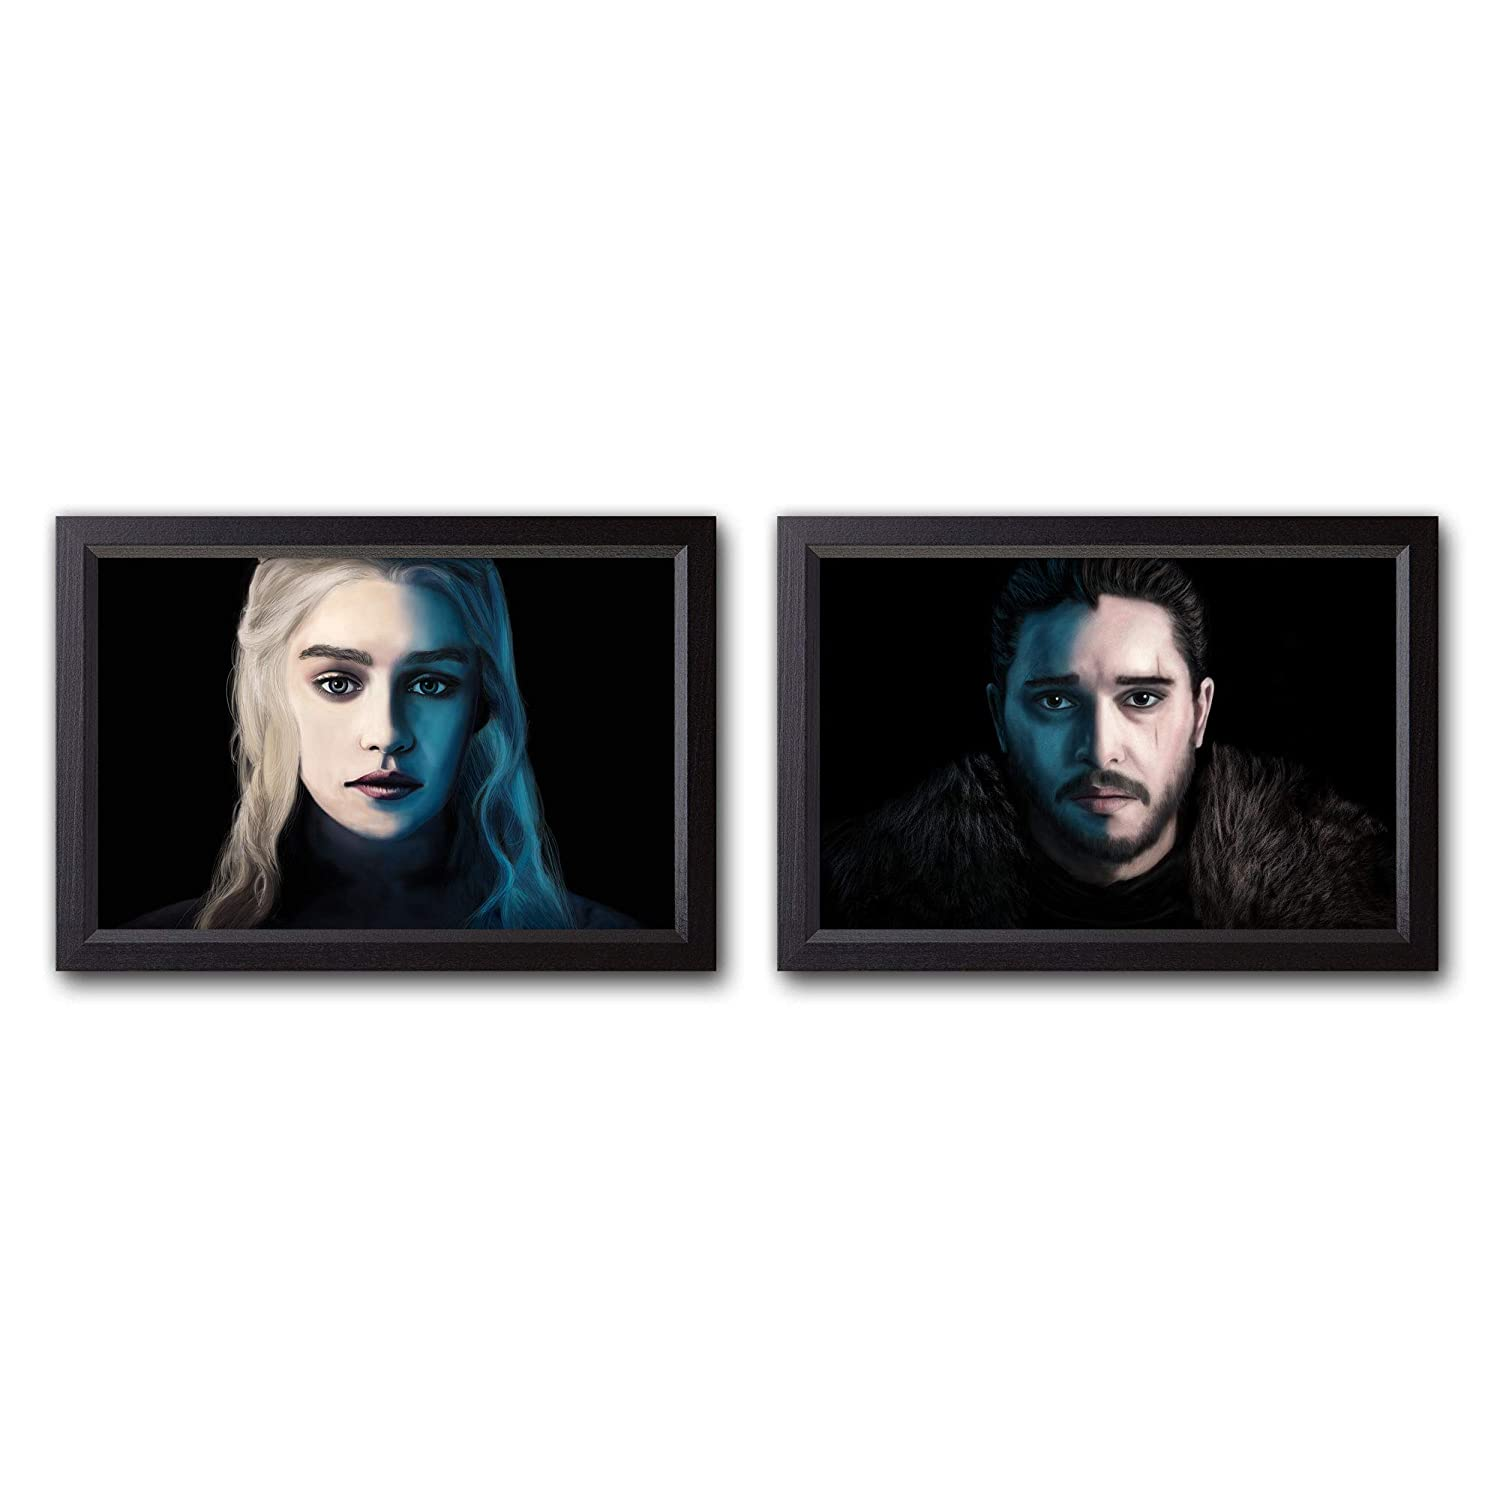 Amazon Com Game Of Thrones Painting Set Daenerys Jon Art Prints Wall Decor Posters Gift 4x6 18x24 In Handmade